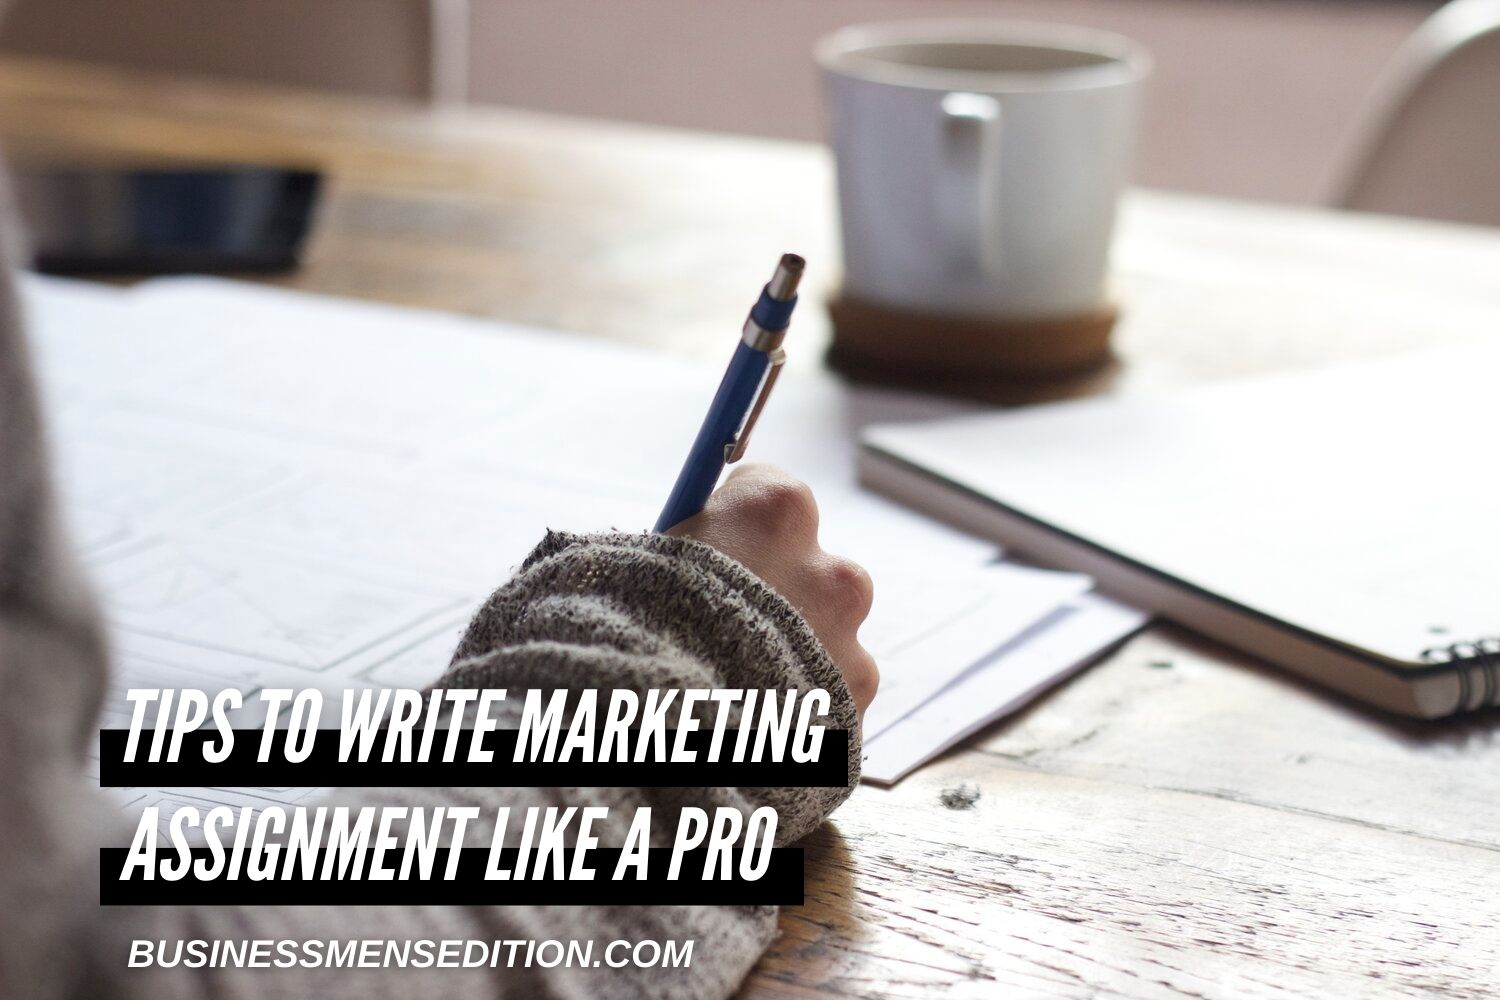 6 Top Tips To Write Marketing Assignment Like A Pro